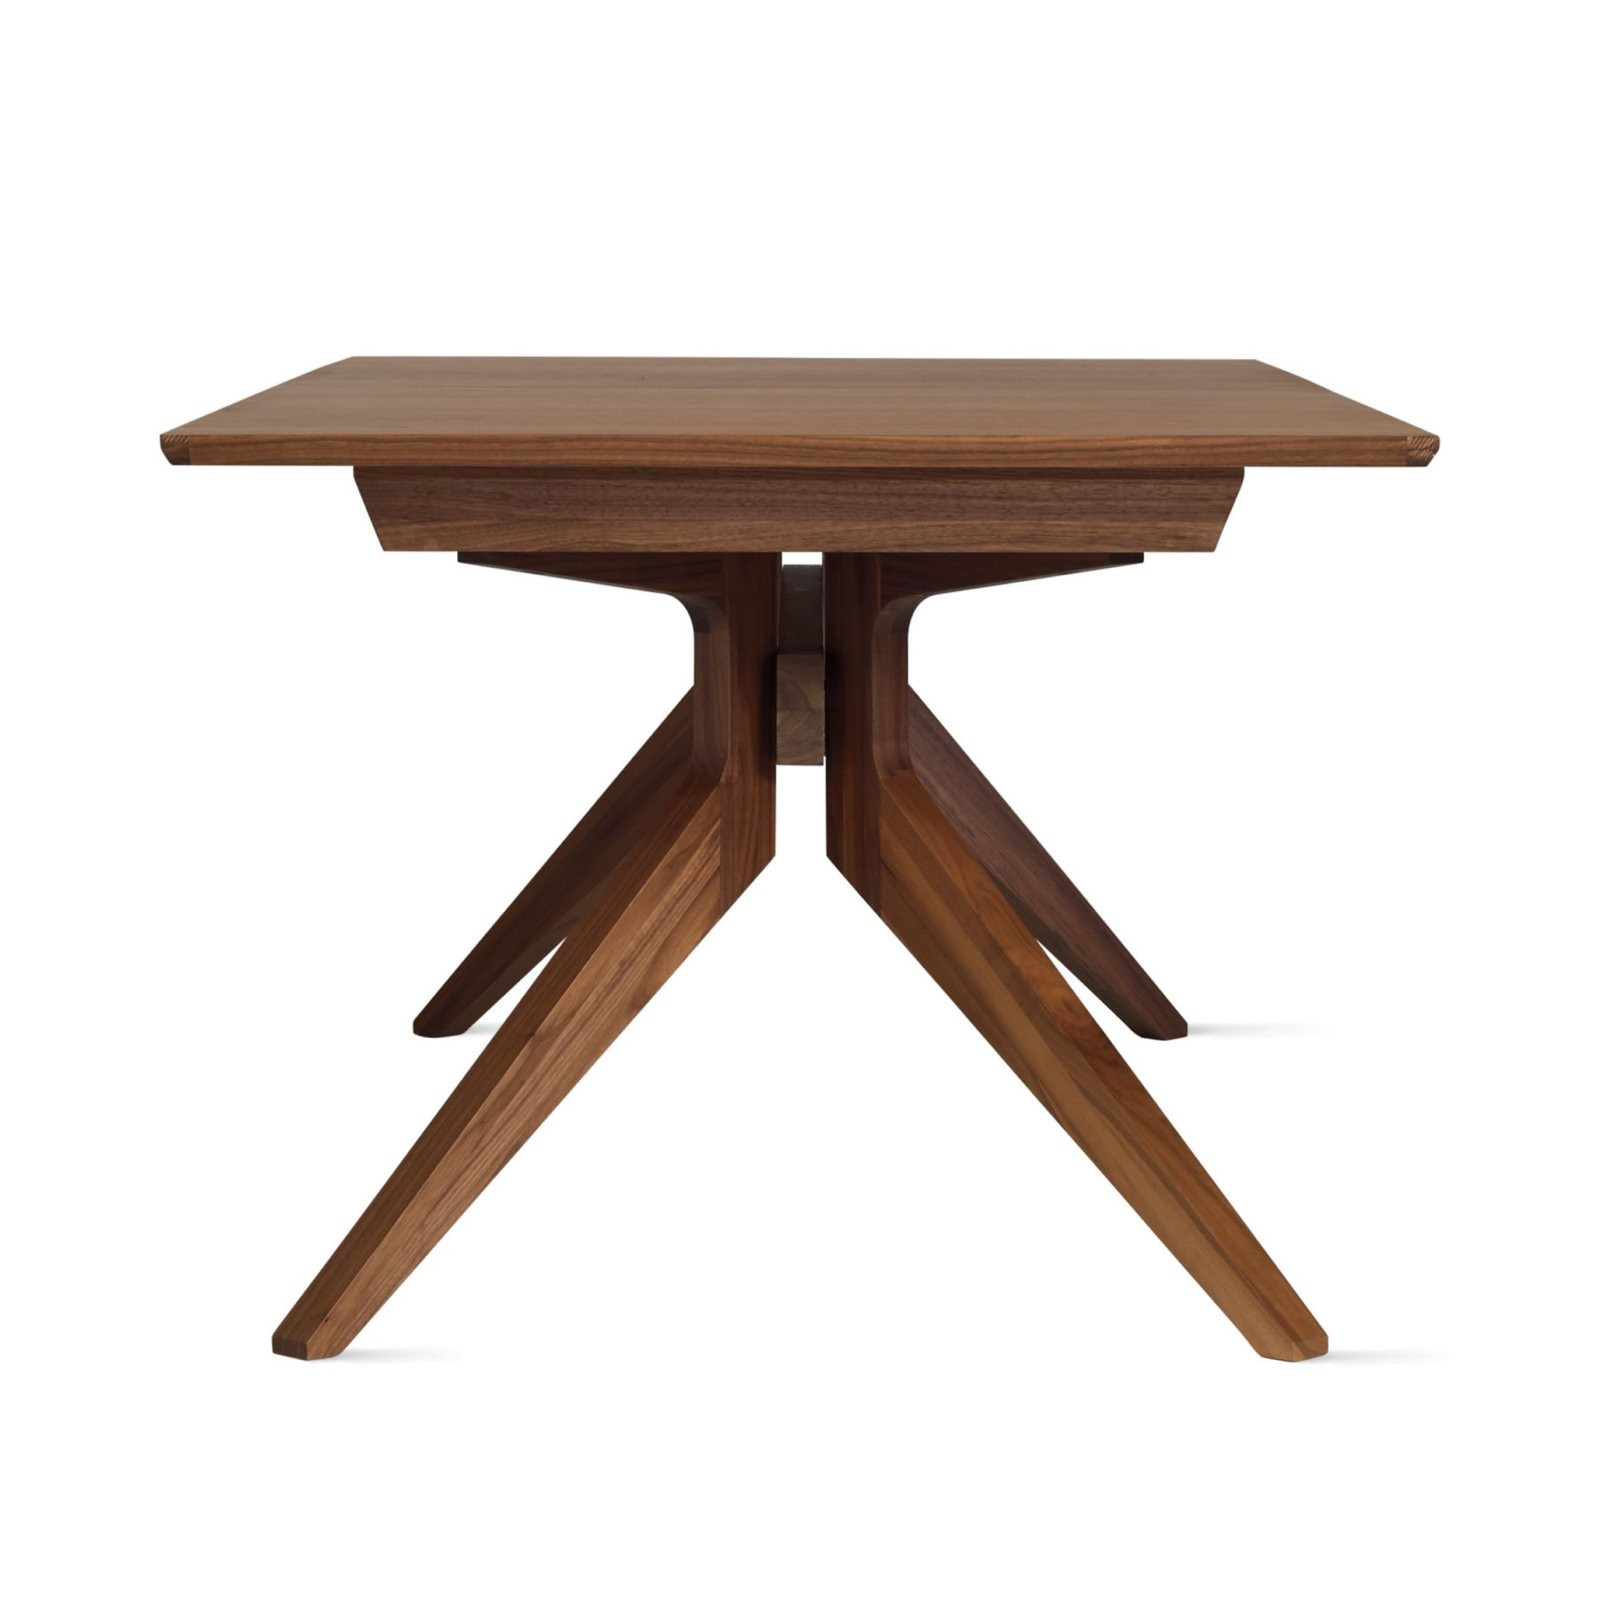 Marvelous Cross Extending Table, Walnut, Side View.